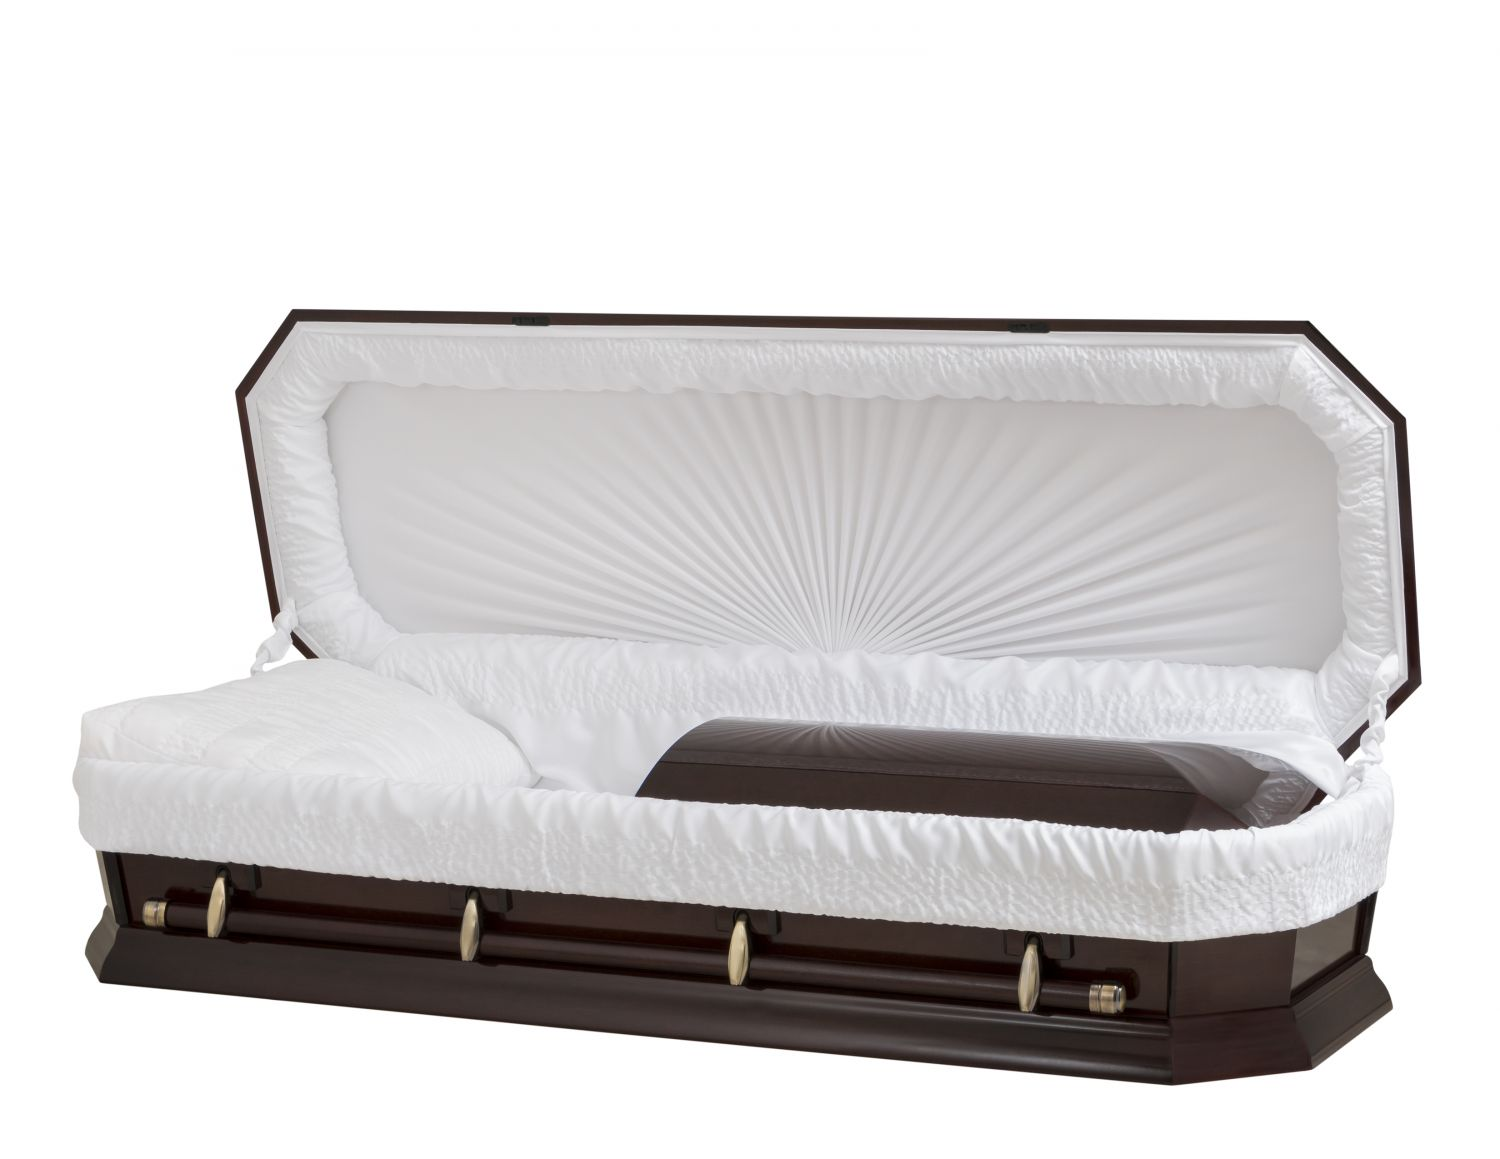 Concept Caskets 28162-00018-N POPLAR CASKET POLISHED CREPE AMARETTO MATRESS NO W1940W-1    4 X 0 GOLD